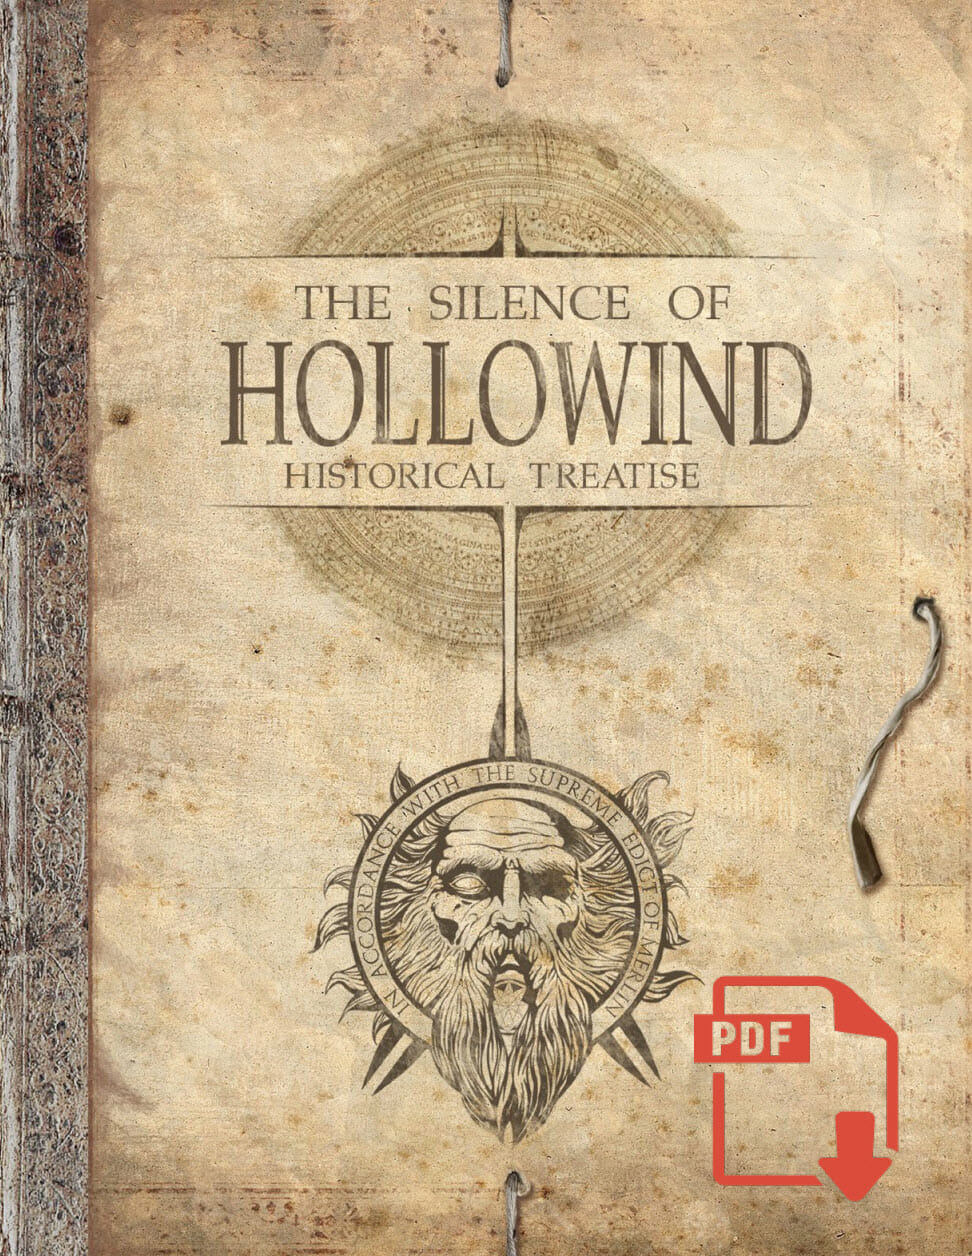 The Silence of Hollowind